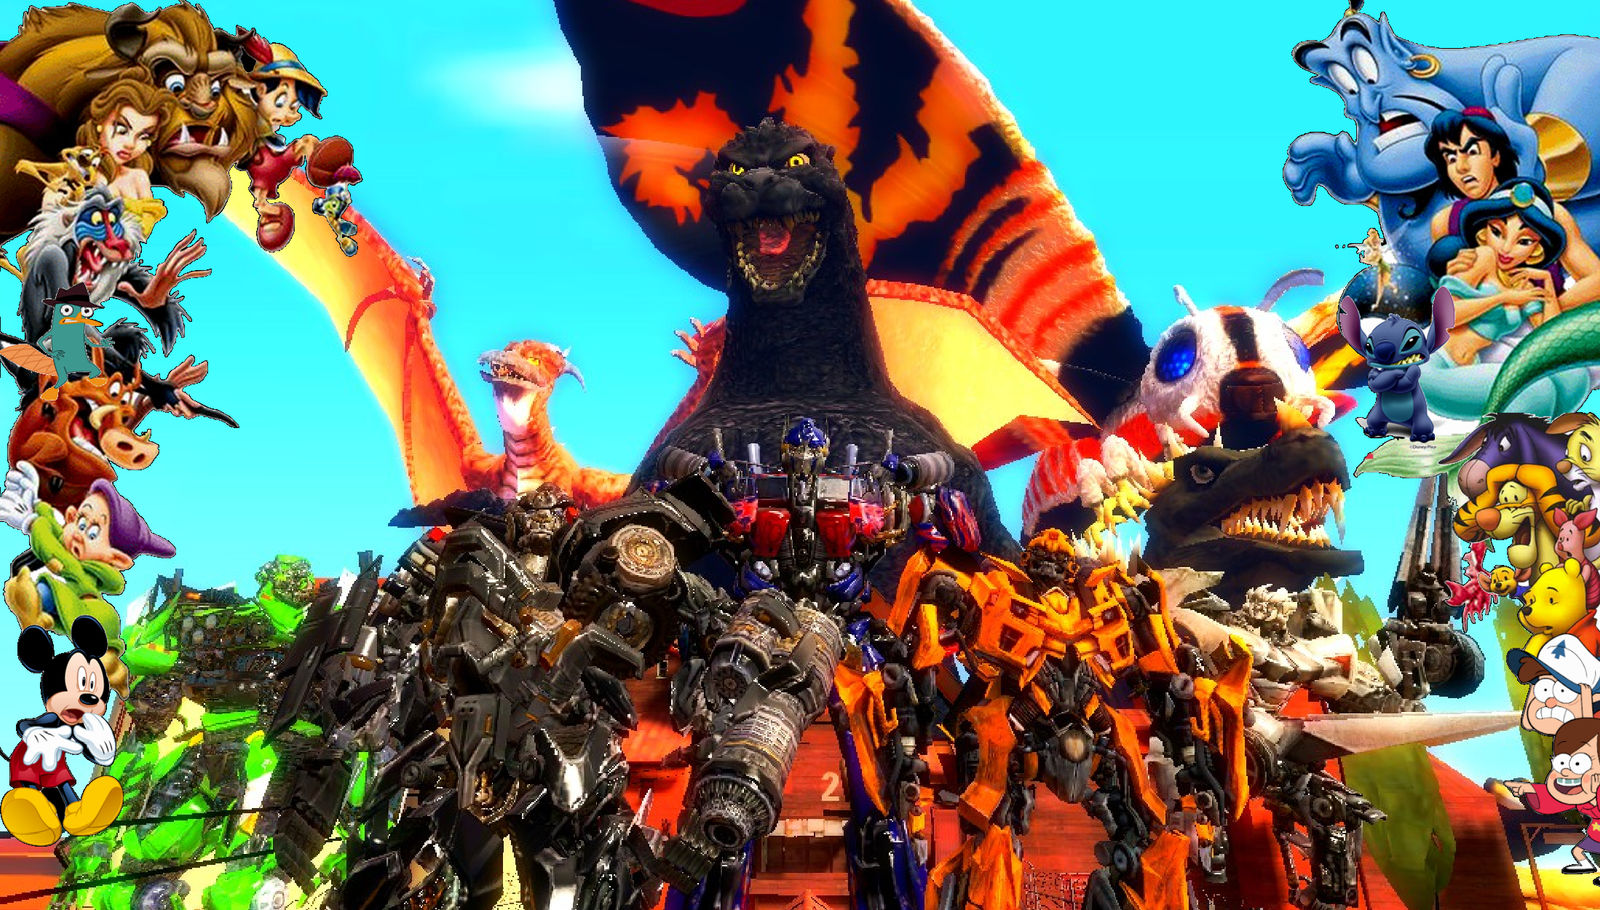 Disney characters Meet Godzilla and Transformers by